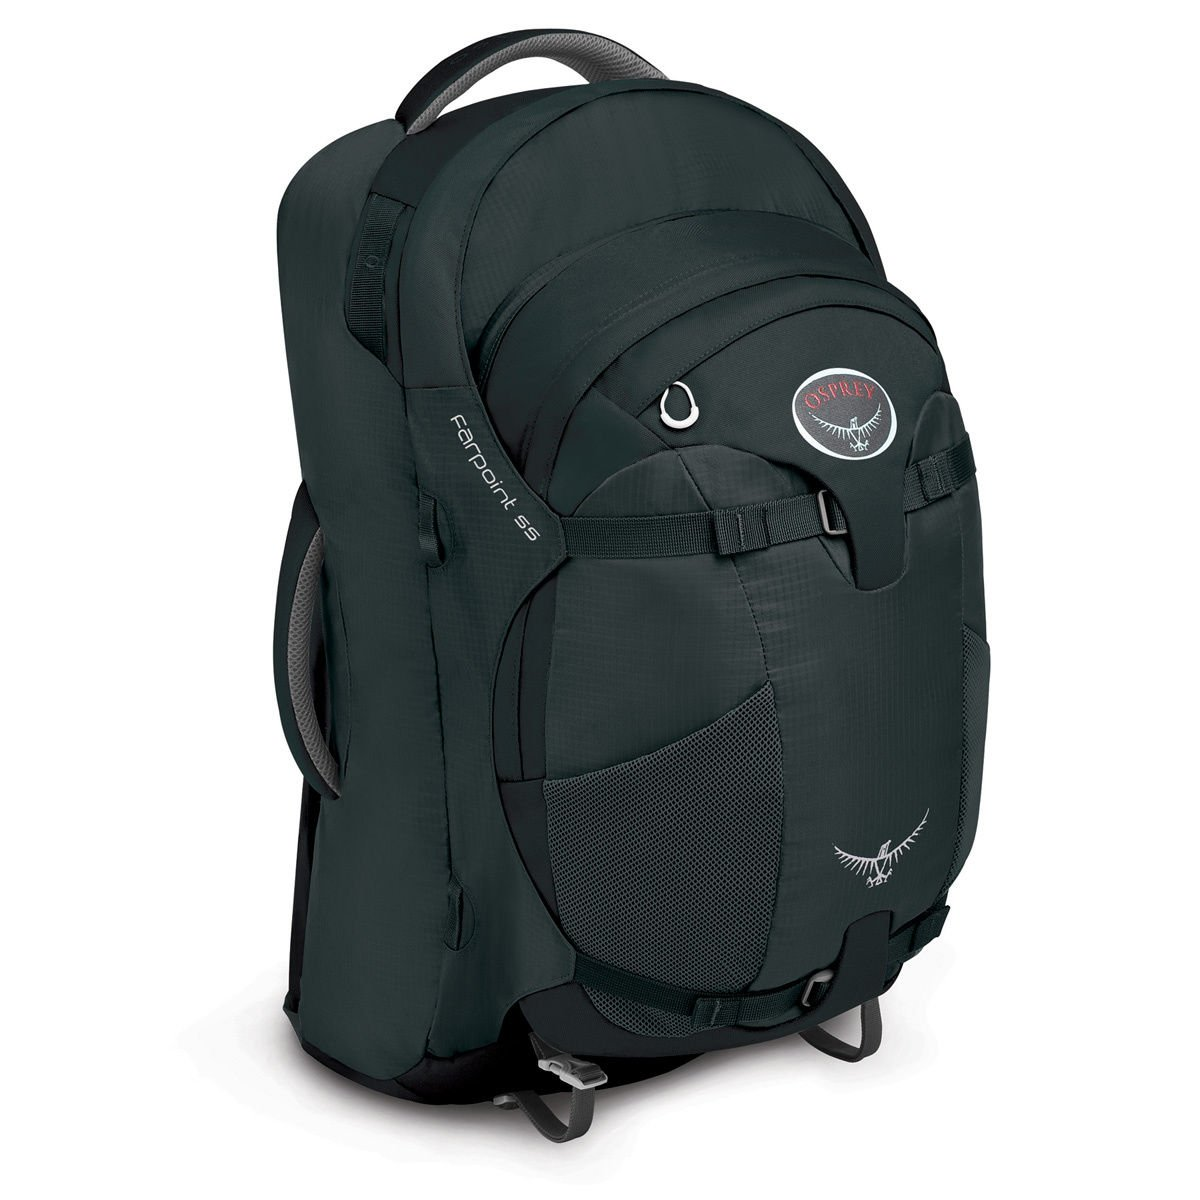 Osprey best travel packpack